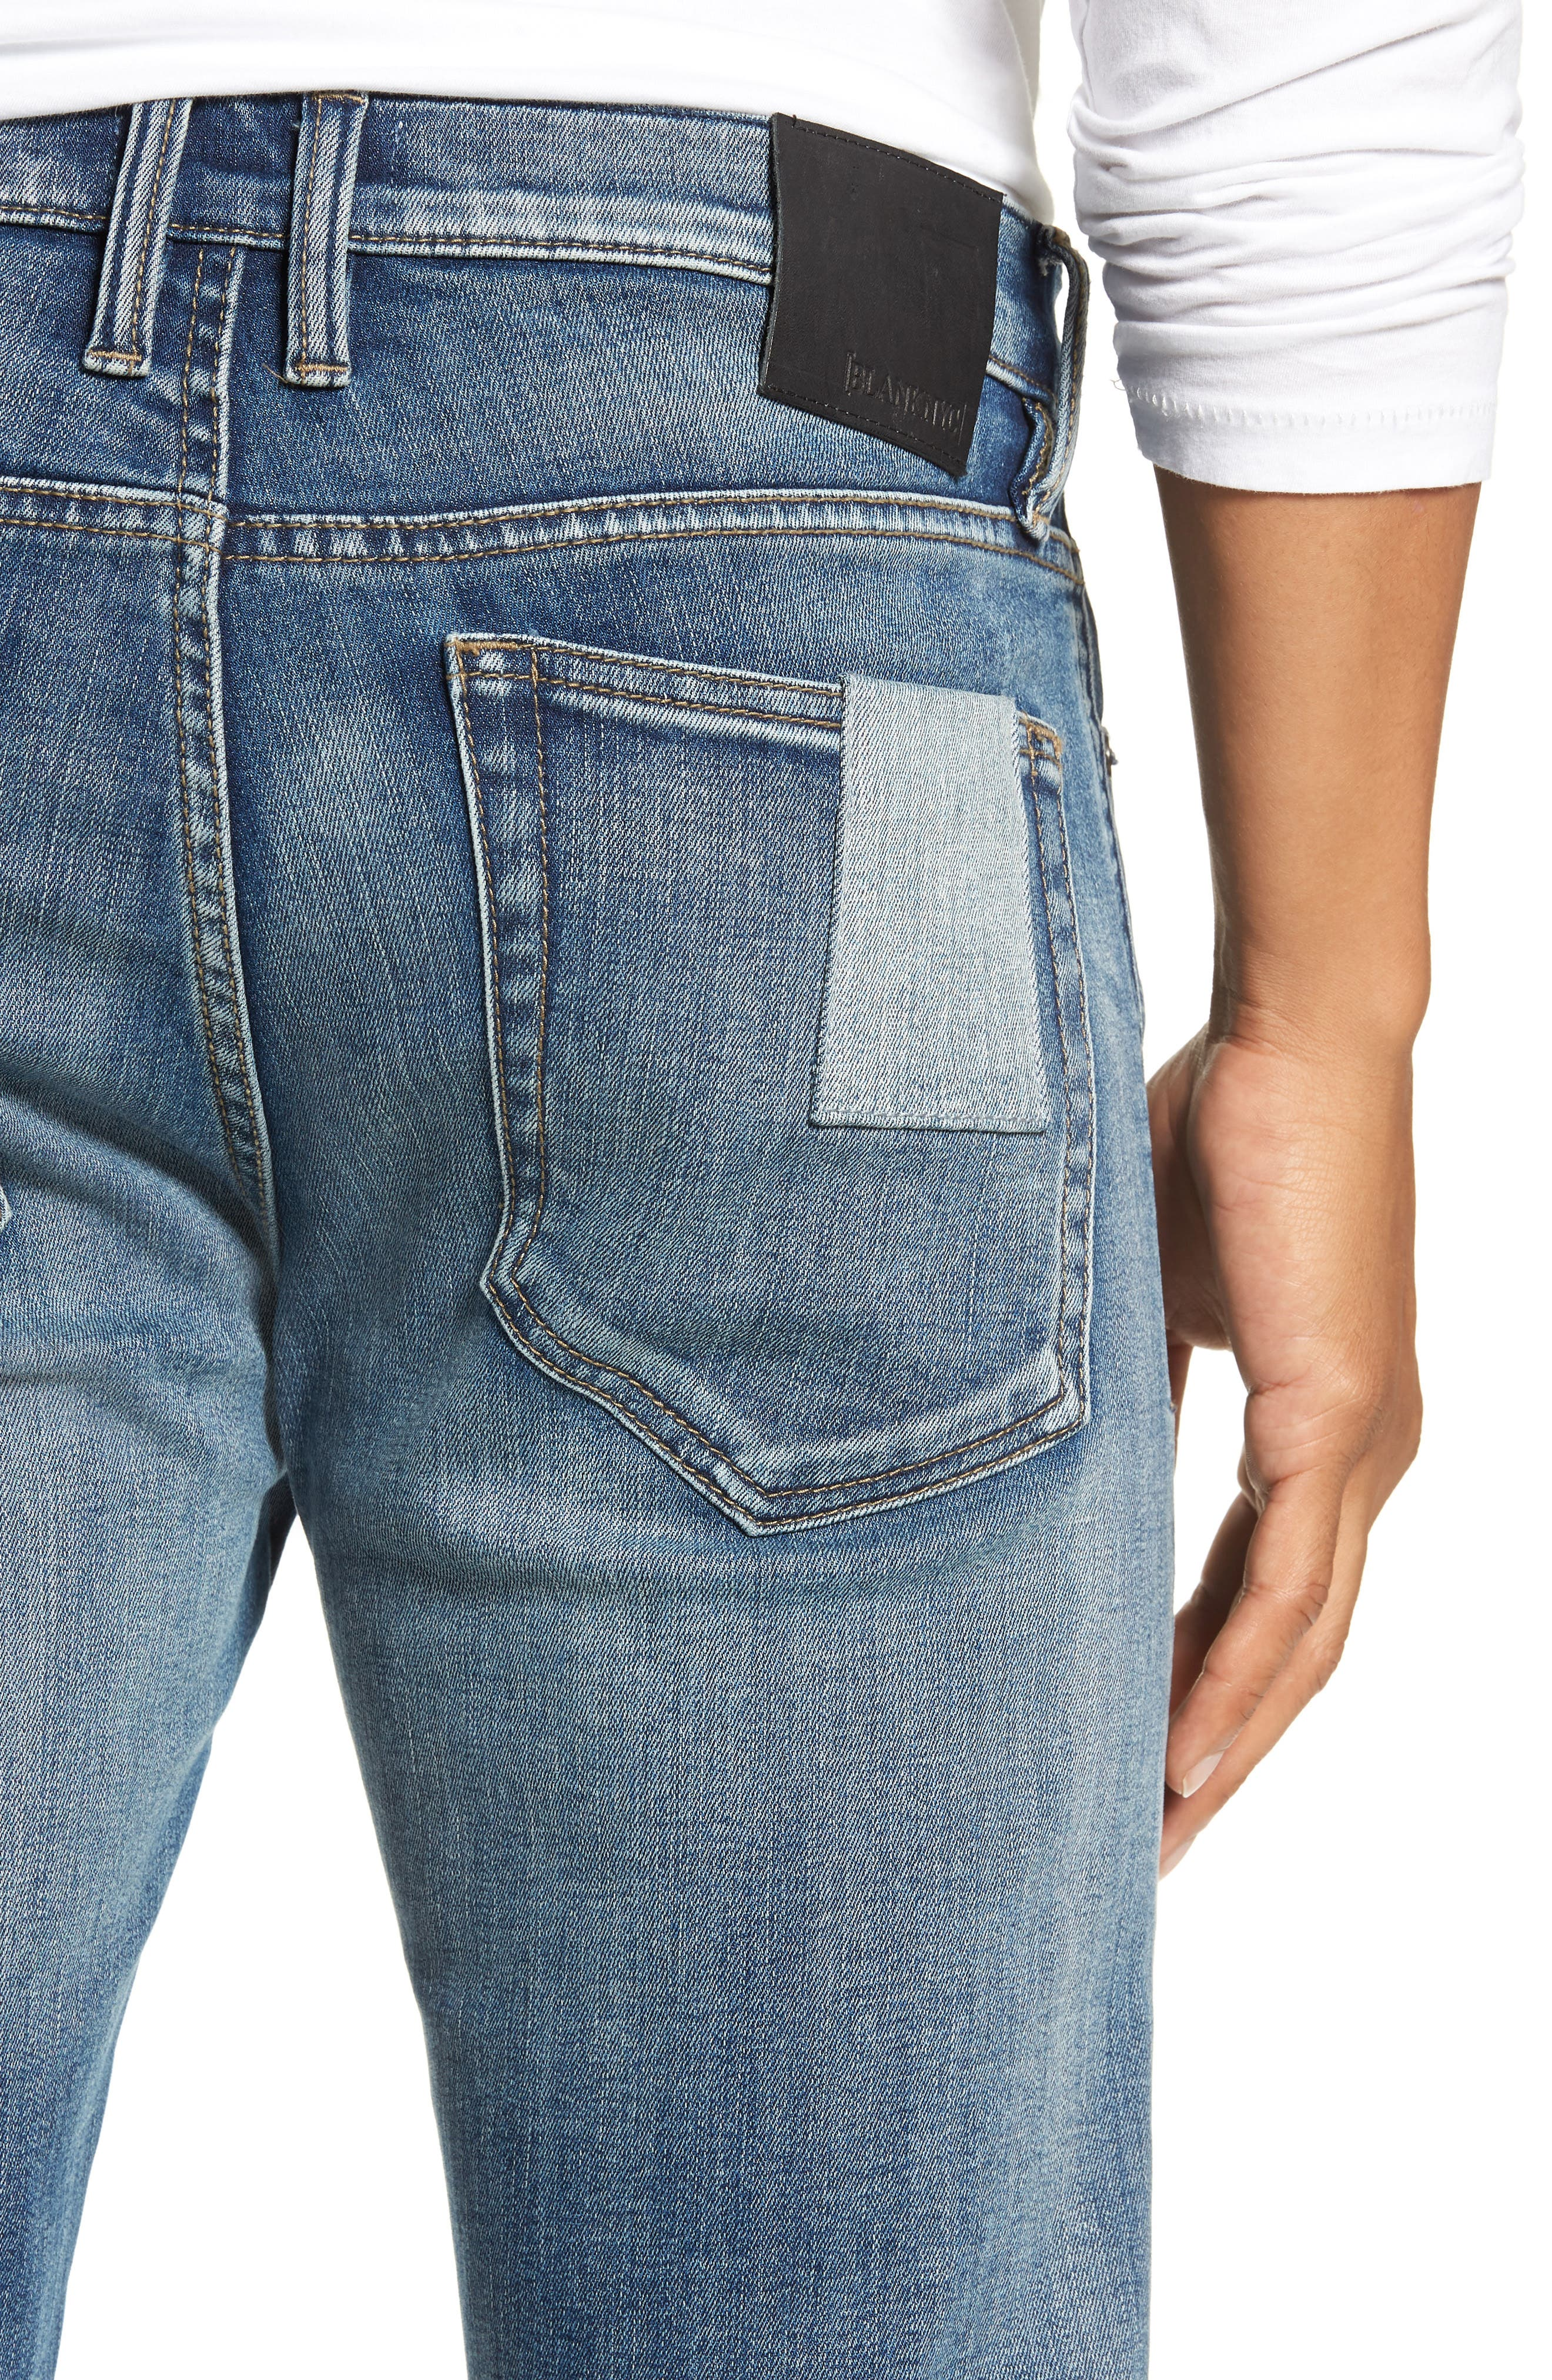 Stanton Straight Leg Jeans,                             Alternate thumbnail 4, color,                             COLD ONE